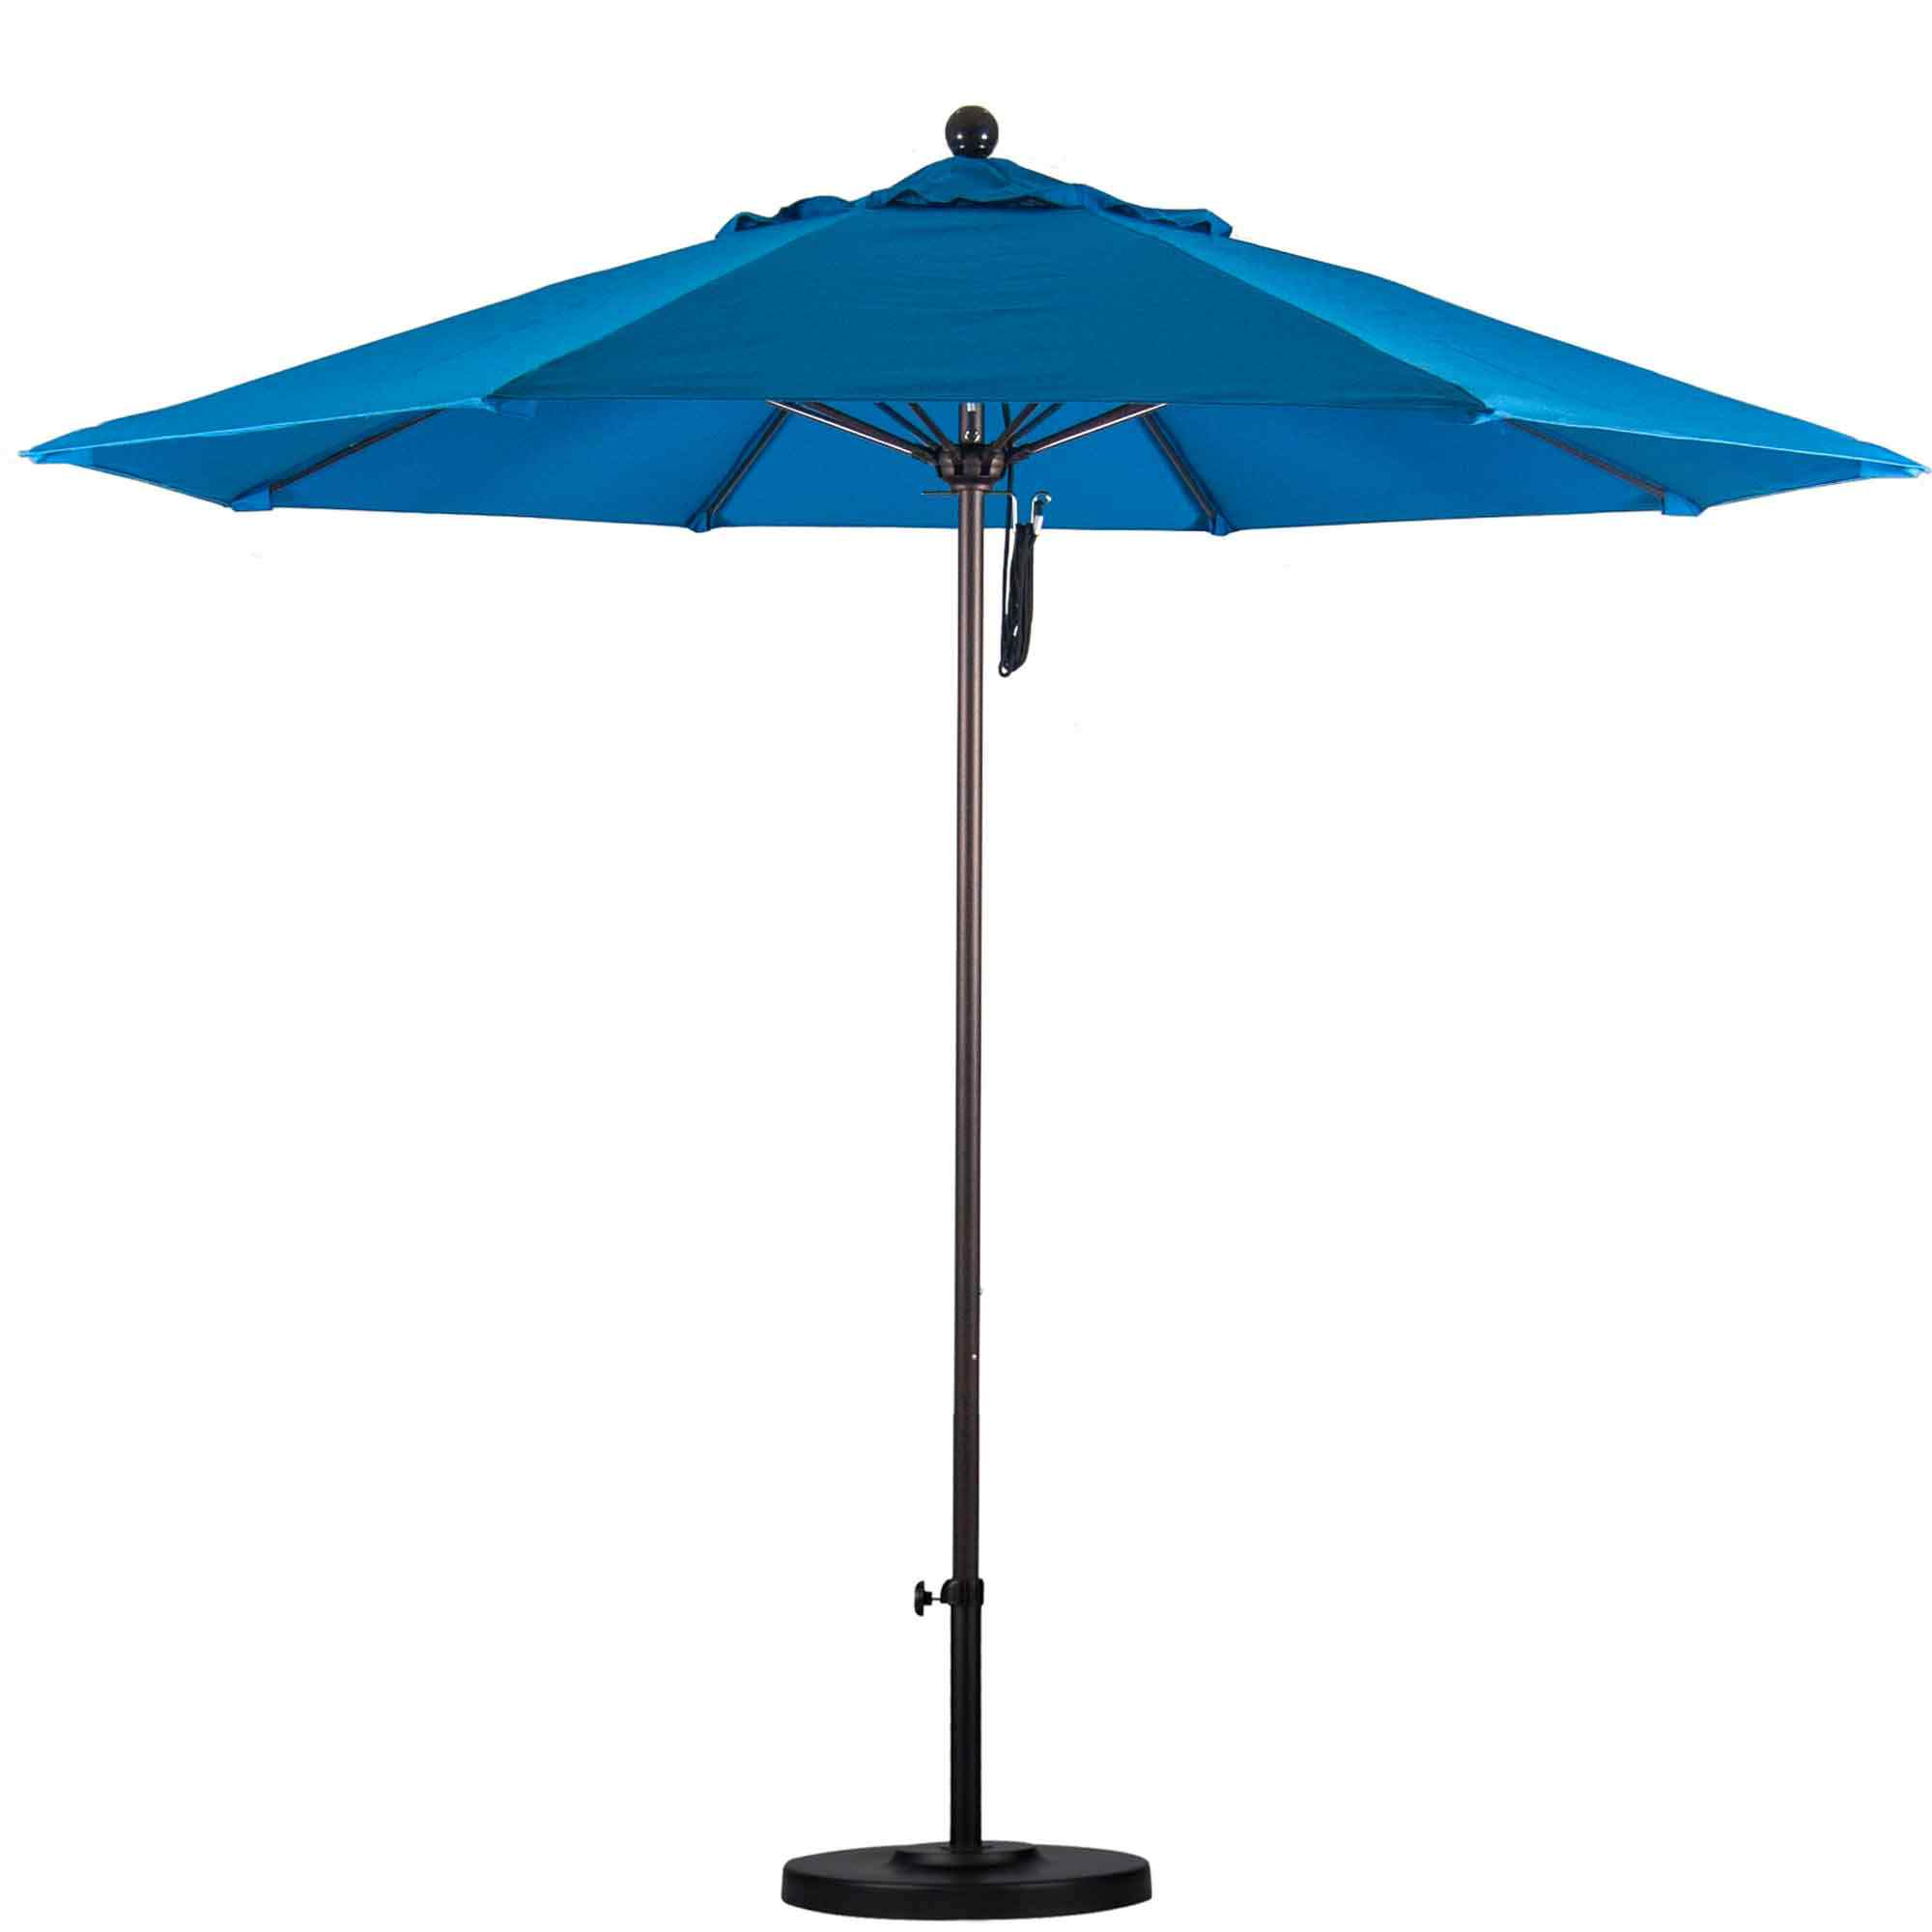 11 Ft Sunbrella Pulley Patio Umbrella With Bronze Pole